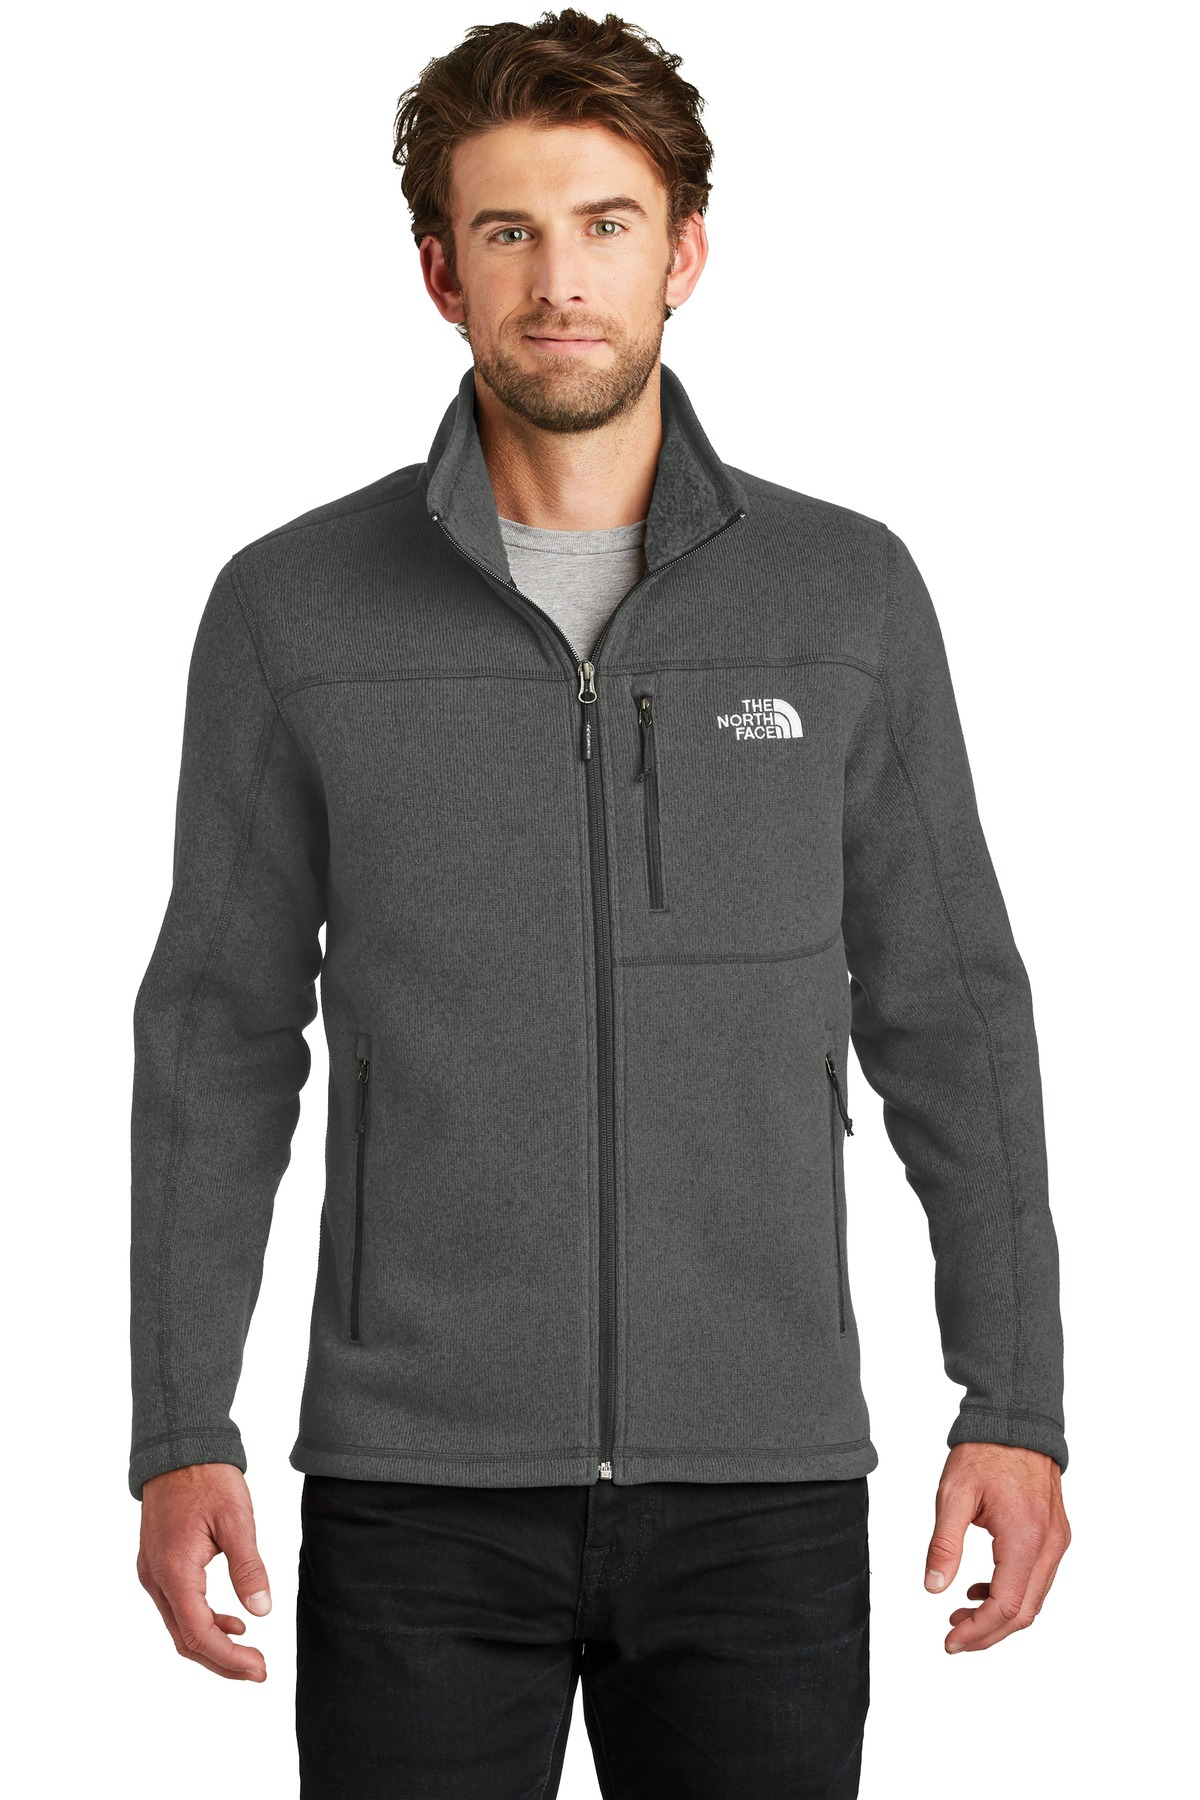 9501ce5e9 Buy The North Face ® Sweater Fleece Jacket. - The North Face Online ...